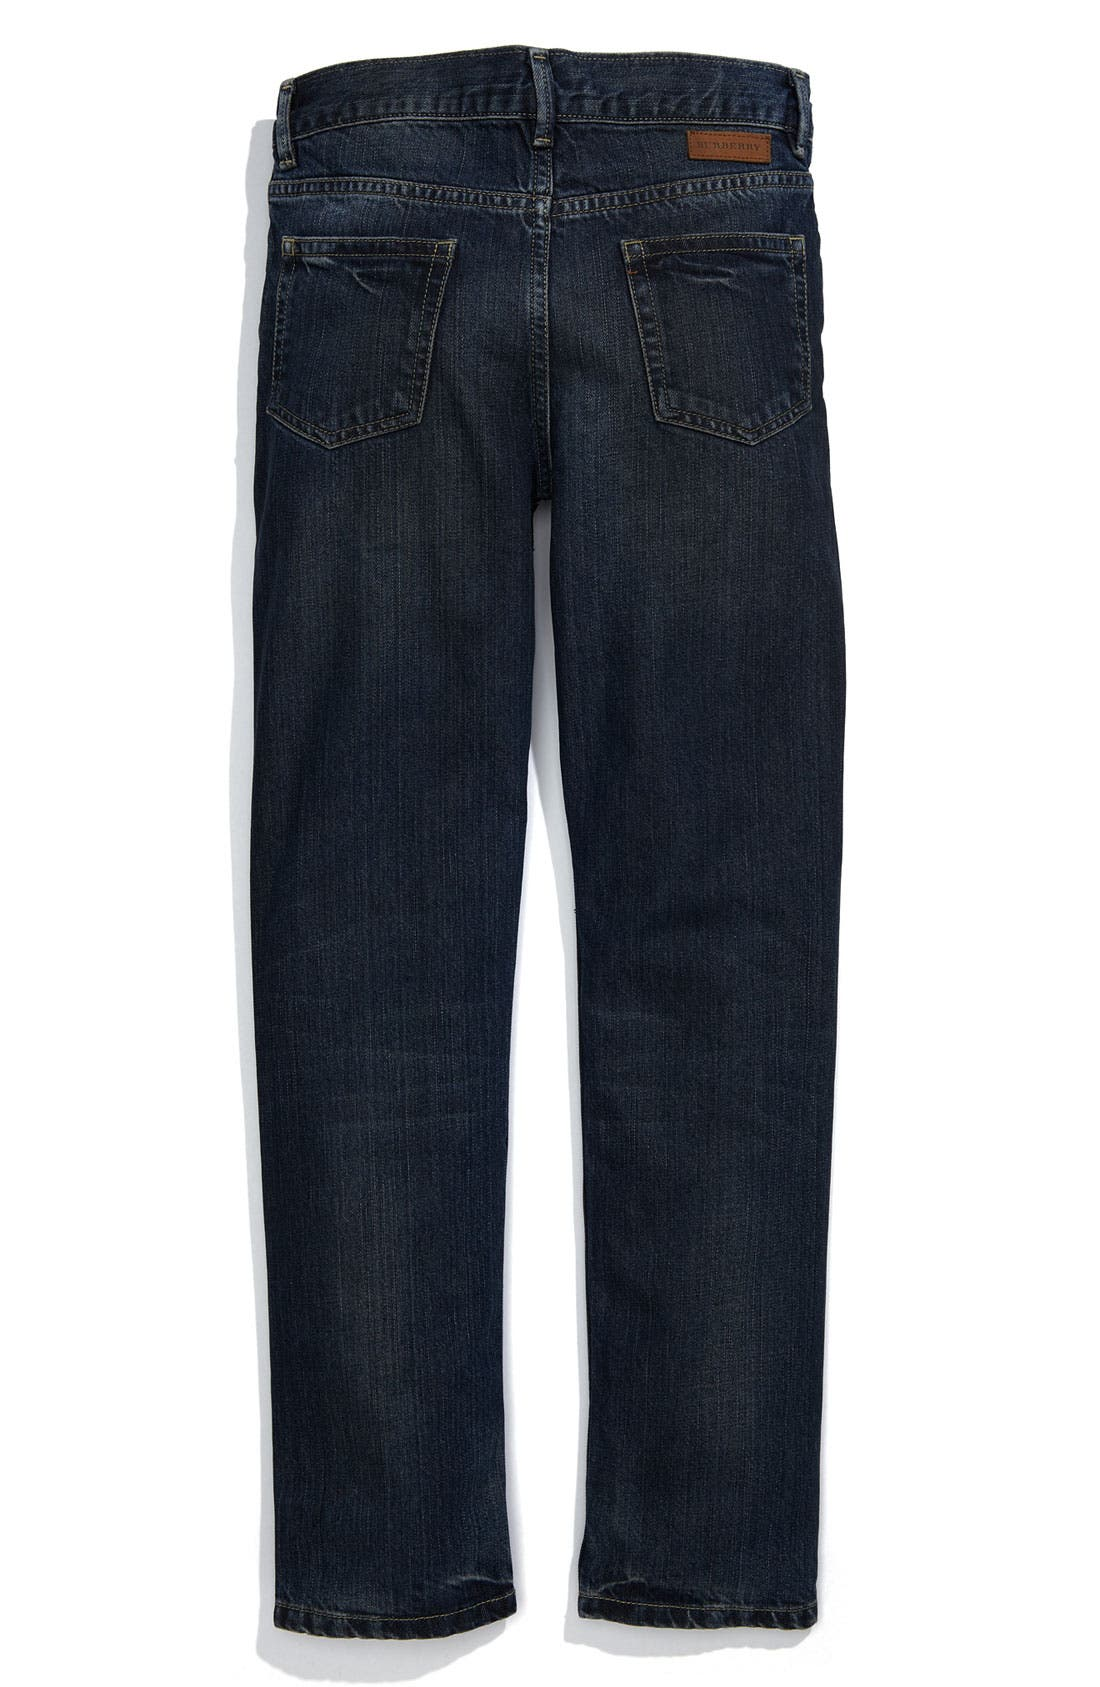 Alternate Image 1 Selected - Burberry Slim Fit Jeans (Big Boys)